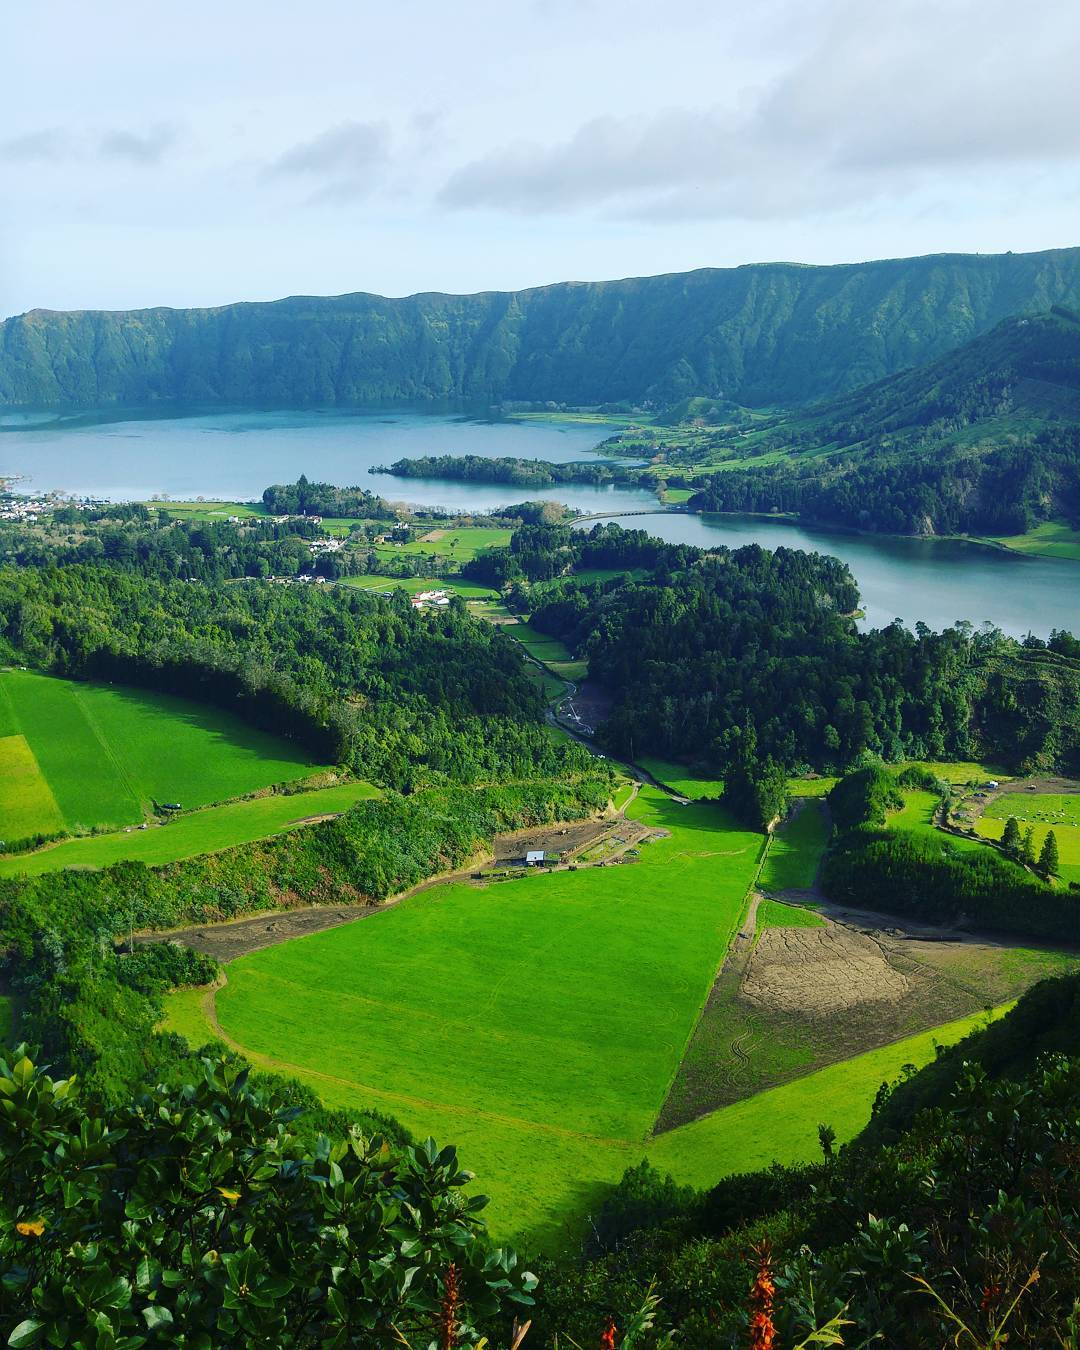 São Miguel, and the reason we travel